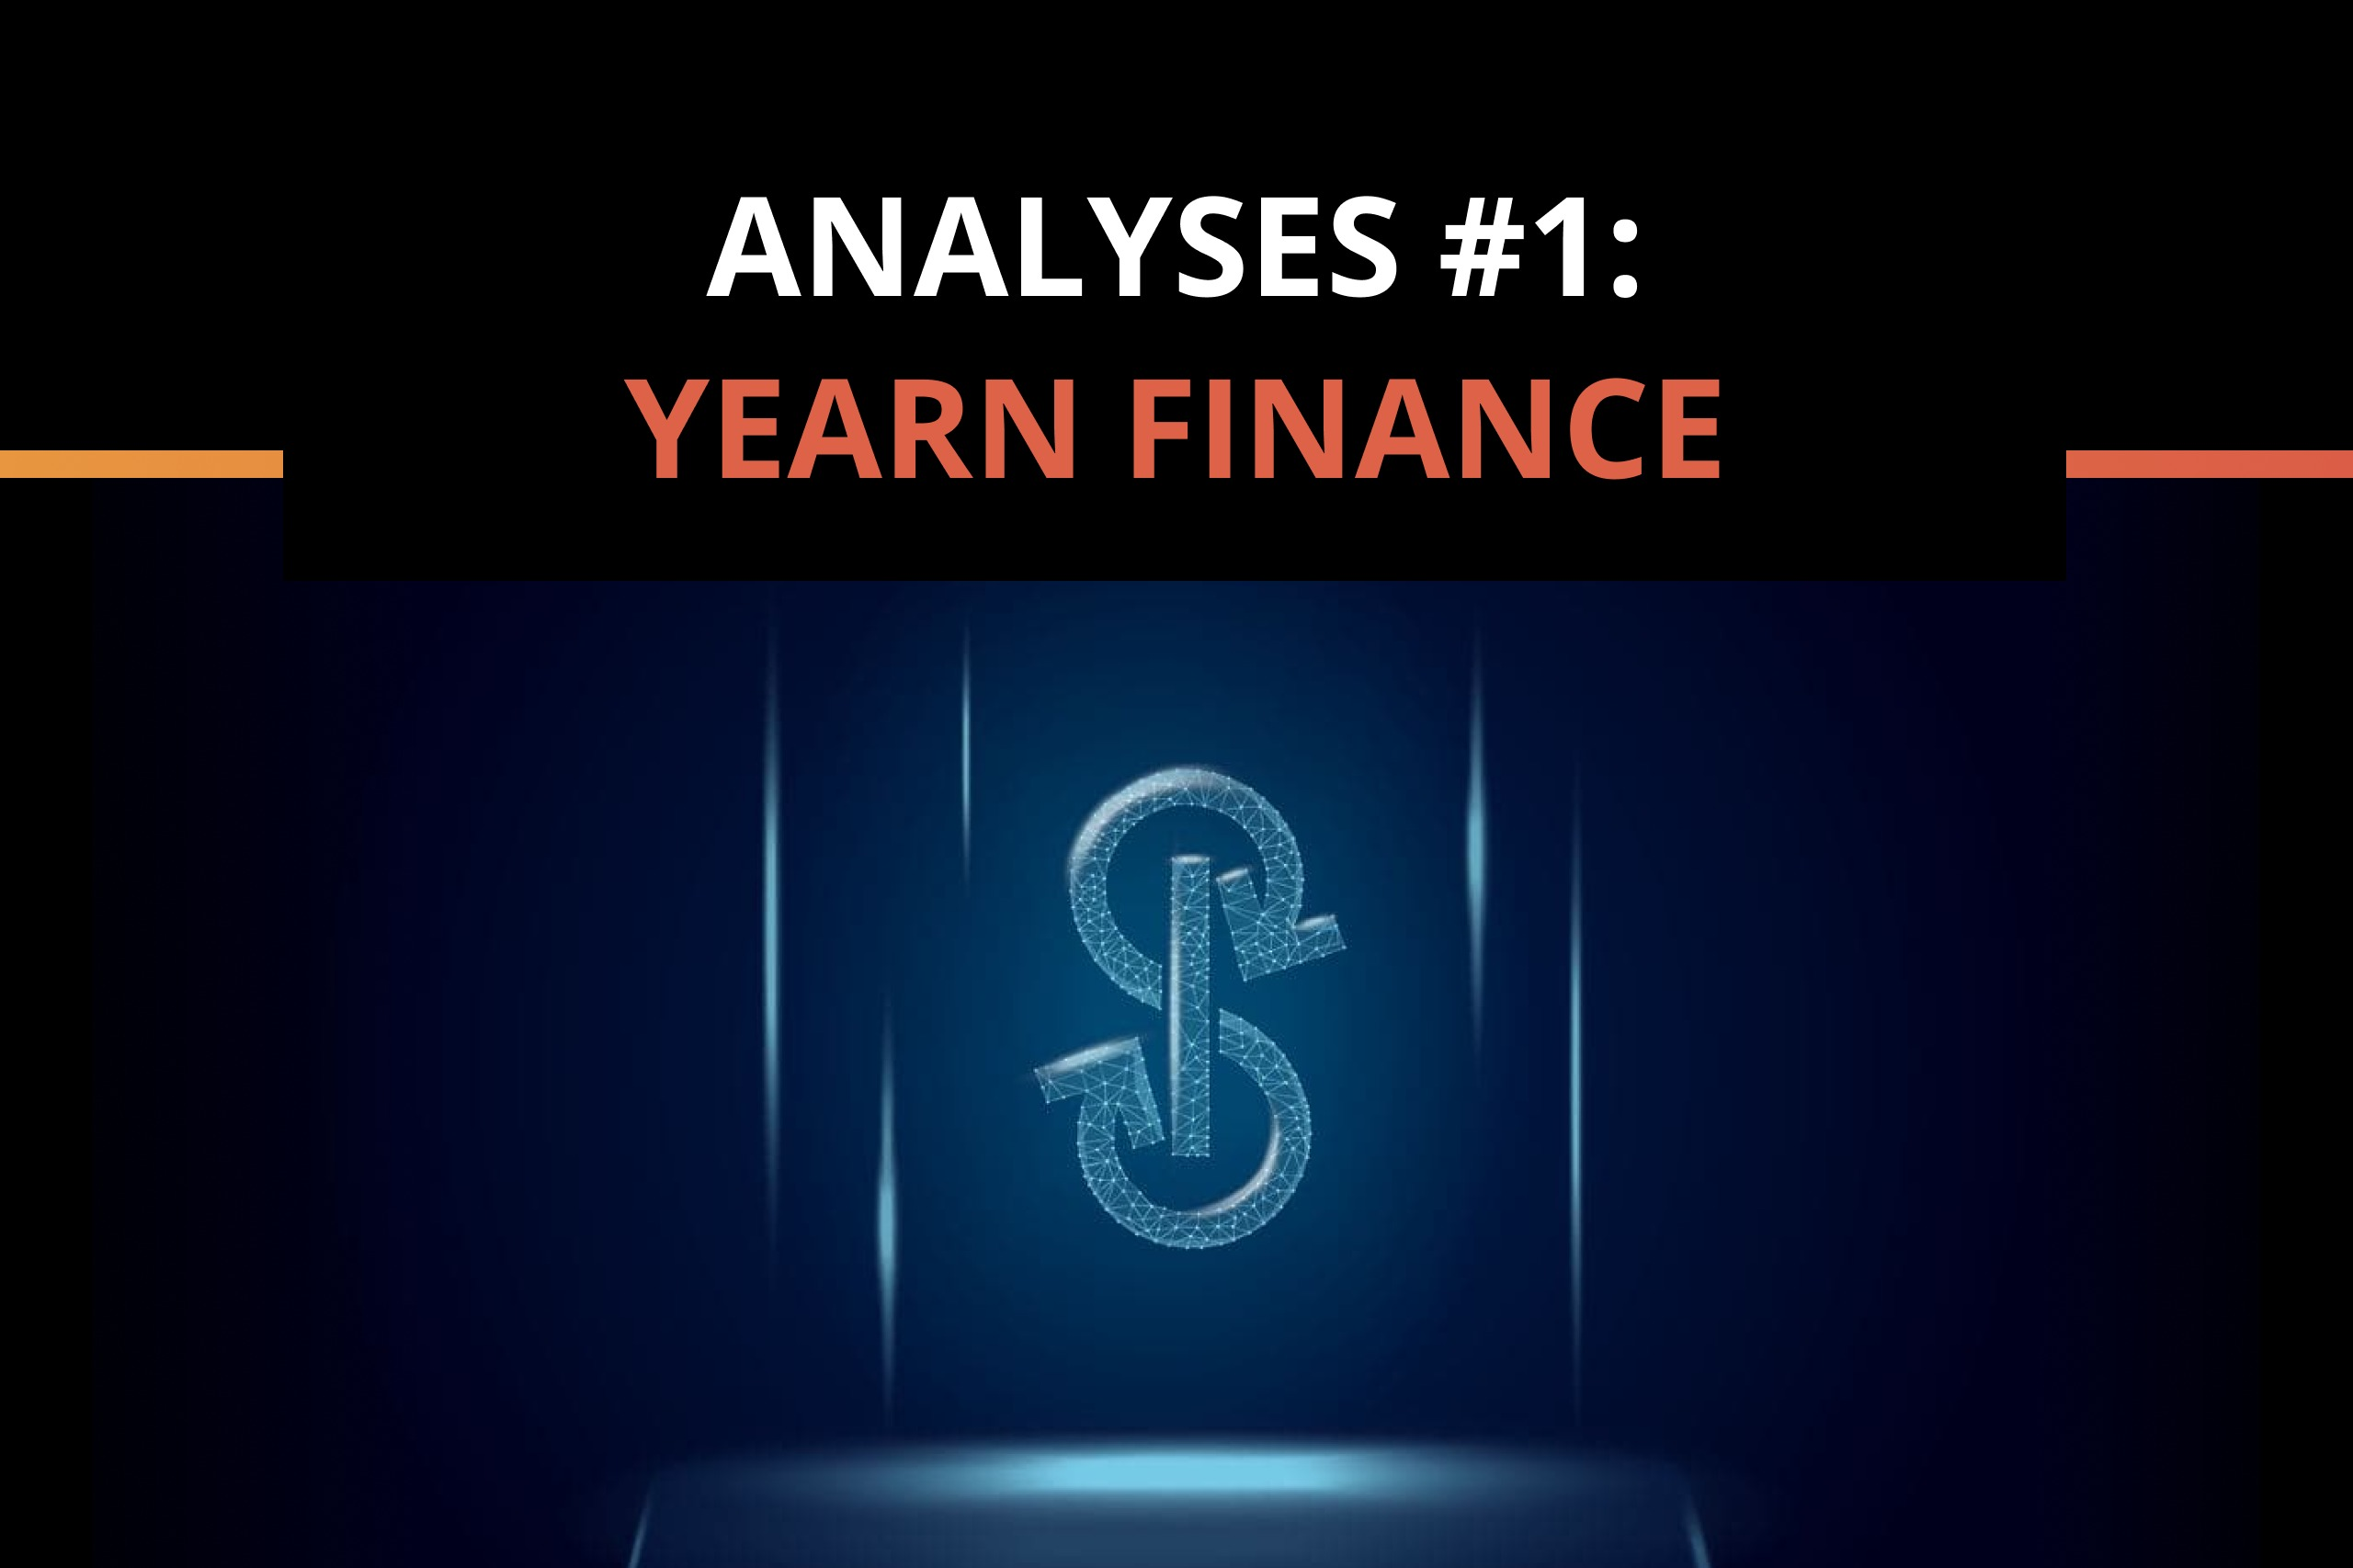 Why Is The Yearn. Finance Still Leading Defi Project Despite The Recent Exploit?